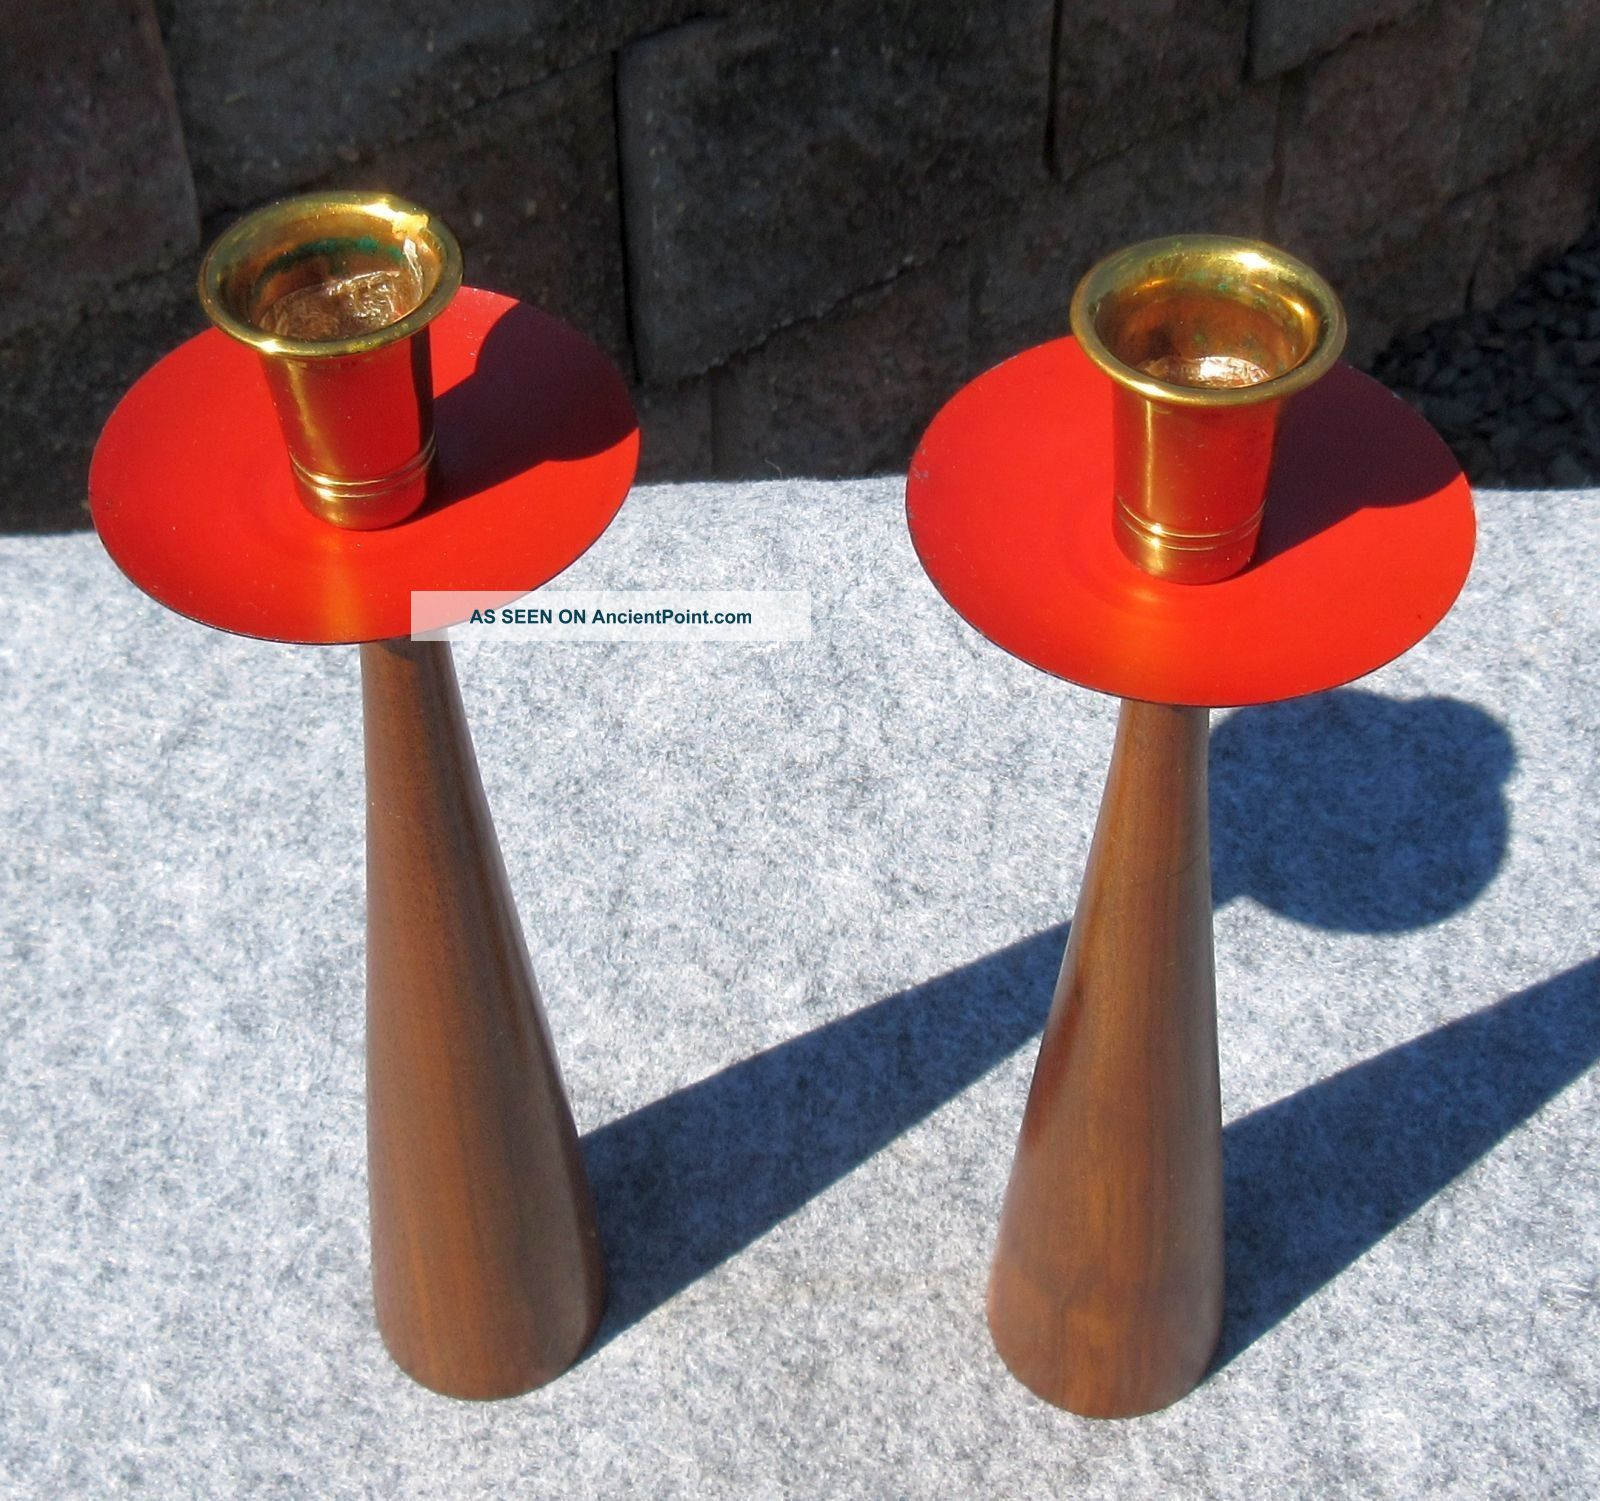 Vintage Mid Century Danish Modern Eames Era Teak Candle Holders Candlesticks Mid-Century Modernism photo